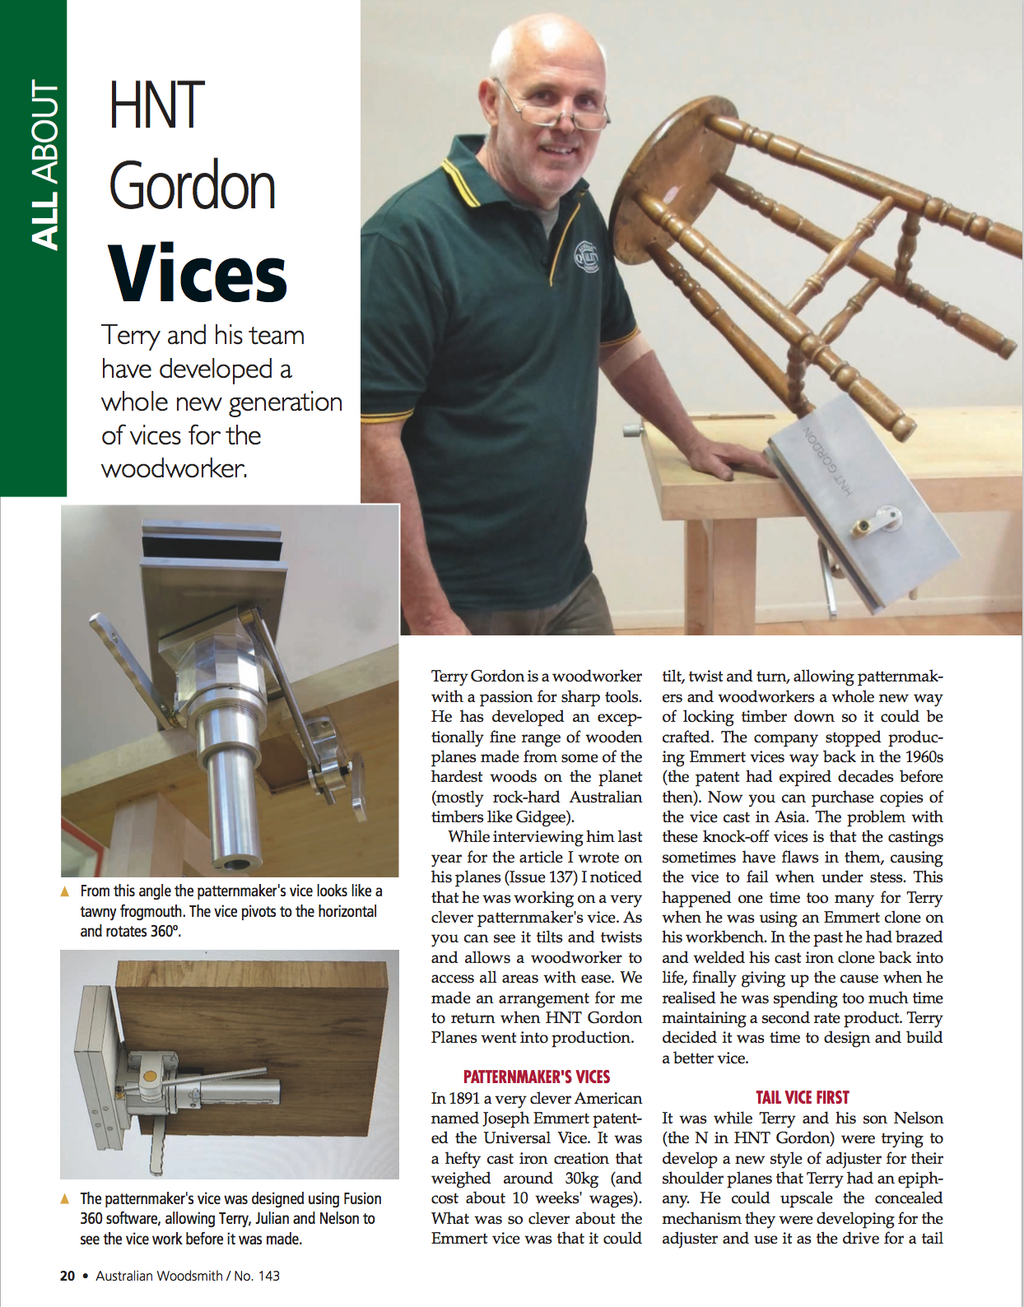 Australian Wood Smith Magazine Article on HNT Gordon Vices